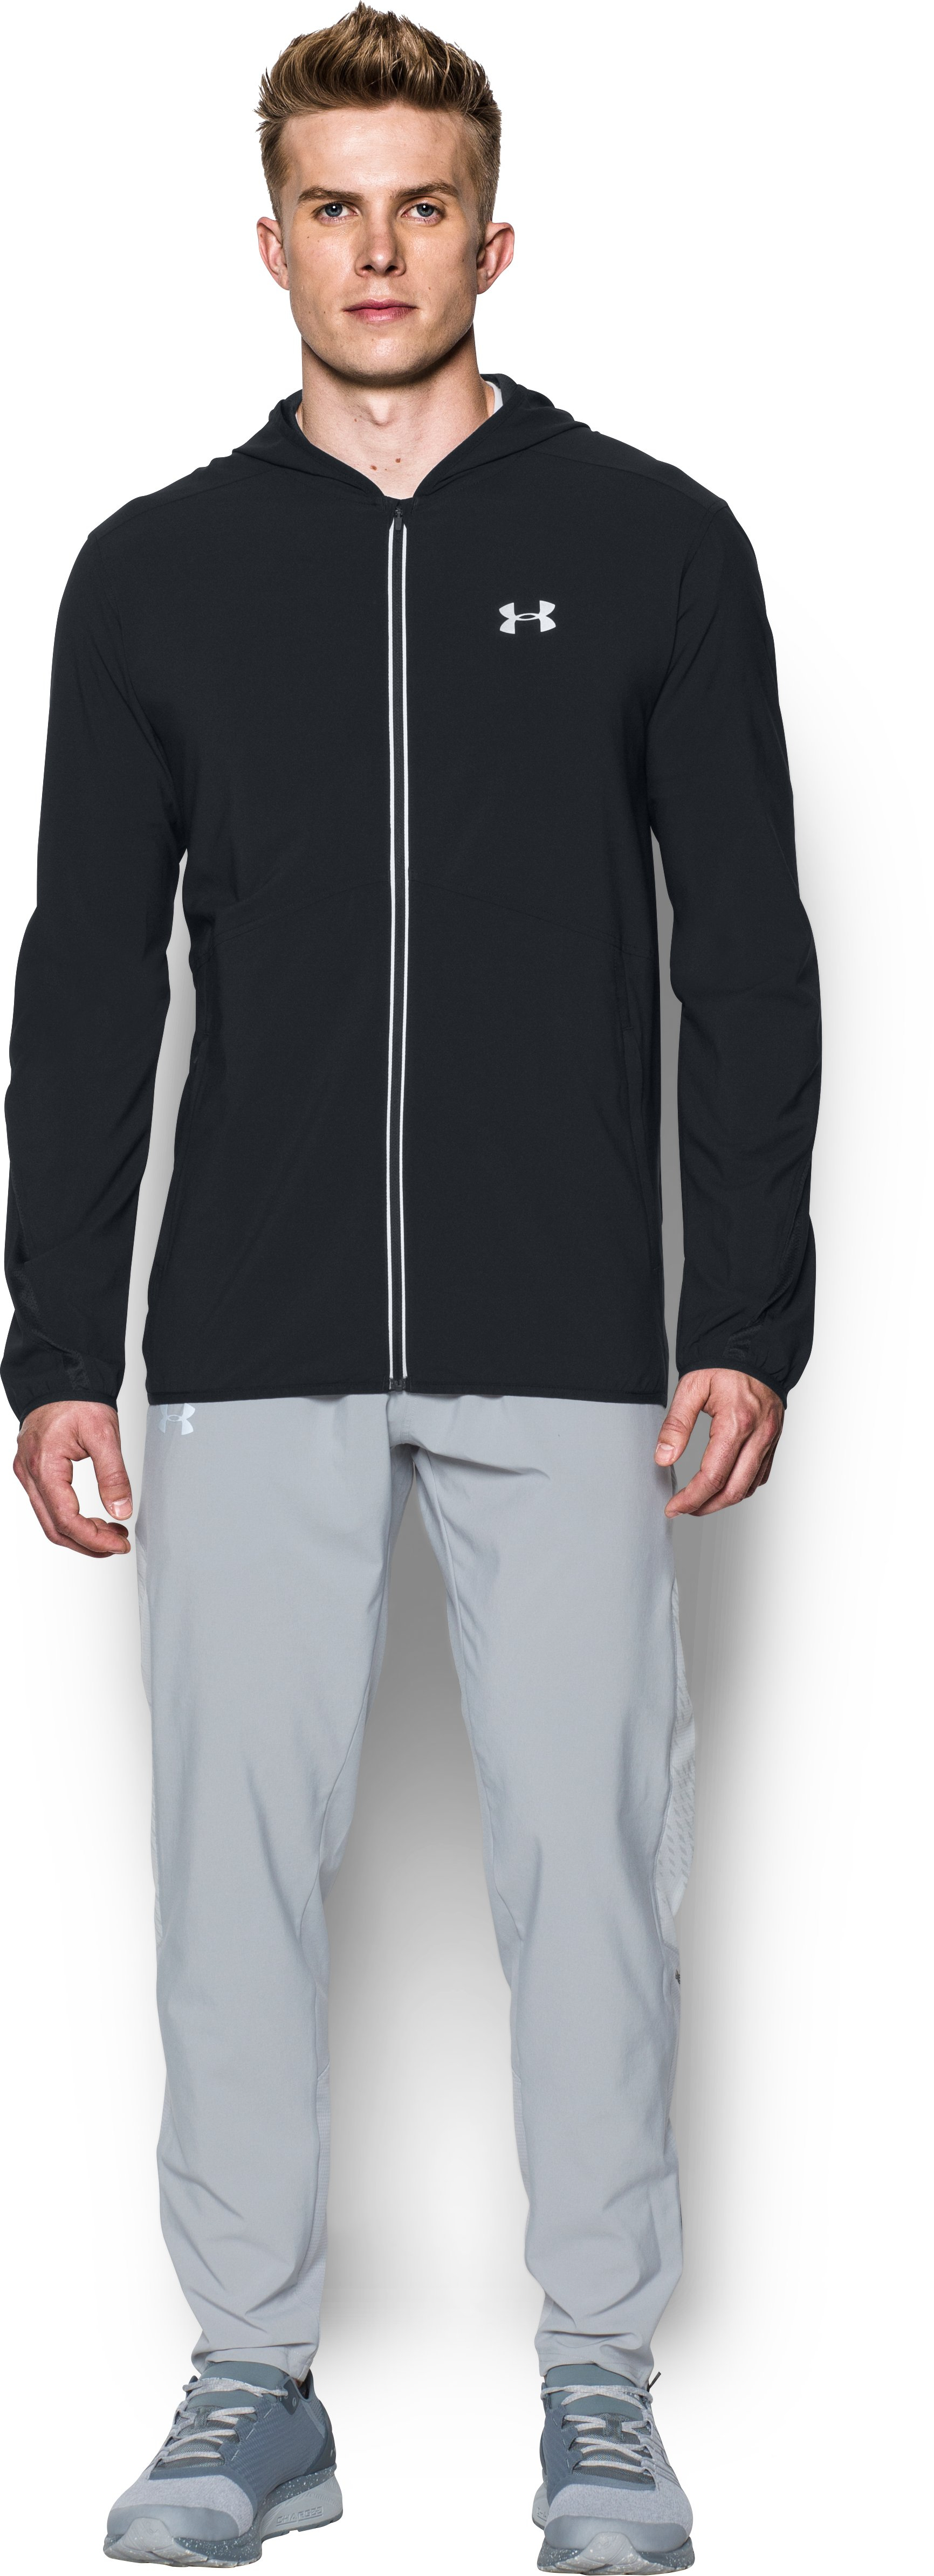 lightweight jackets for running Men's UA Run True Jacket Light and Effective...Lightweight , very nice BUT KIND OF EXPENSIVE AND IT IS BETTER TO BUY IT ONLINE...Great run jacket for temops between 42F and 55F worn over a heatgear short sleeve t-shirt